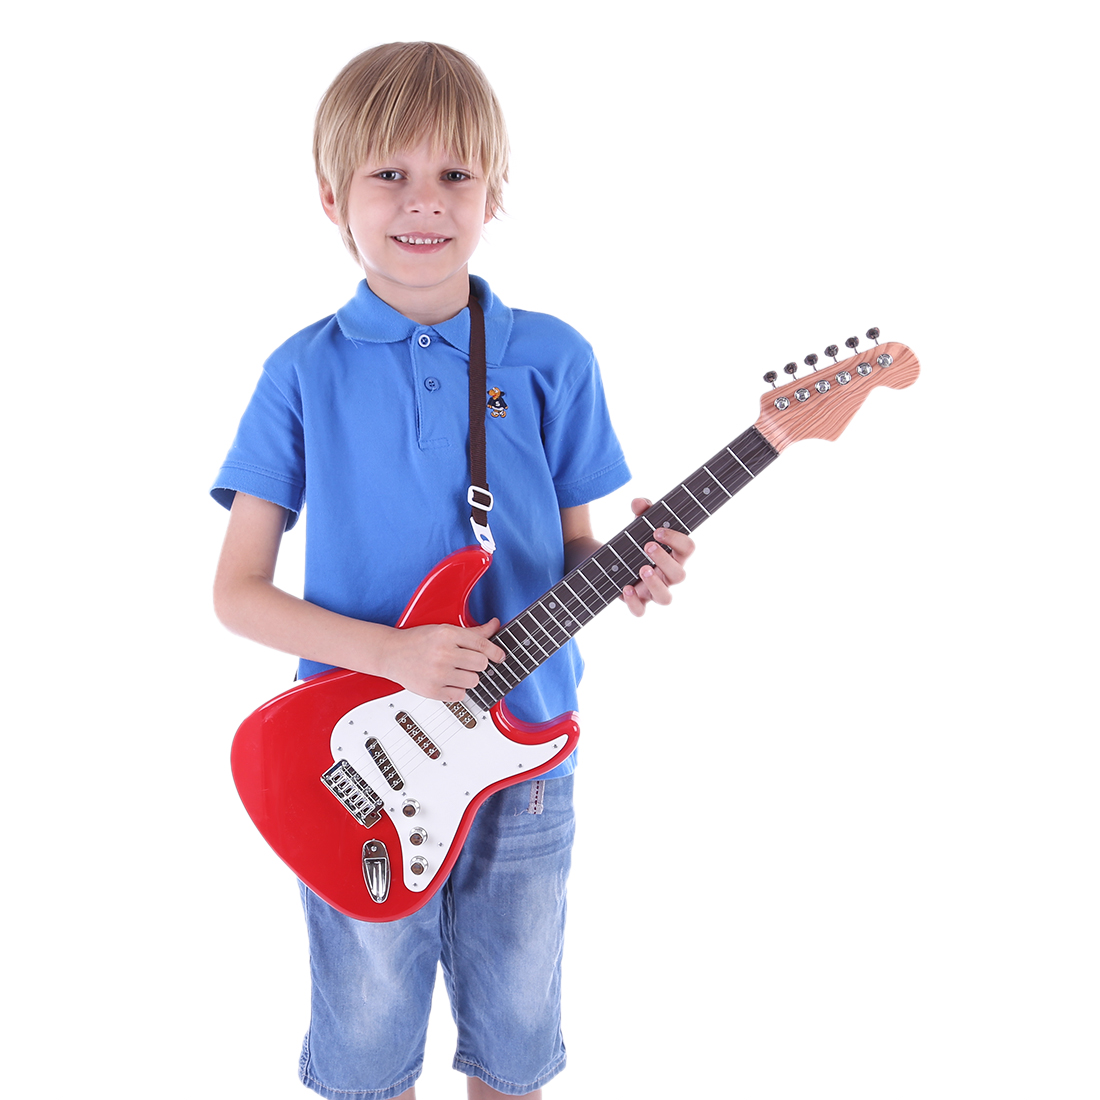 26-Inch Kids Guitar 6 String with Strap Musical Instruments Electic Guitar Toy (Red)